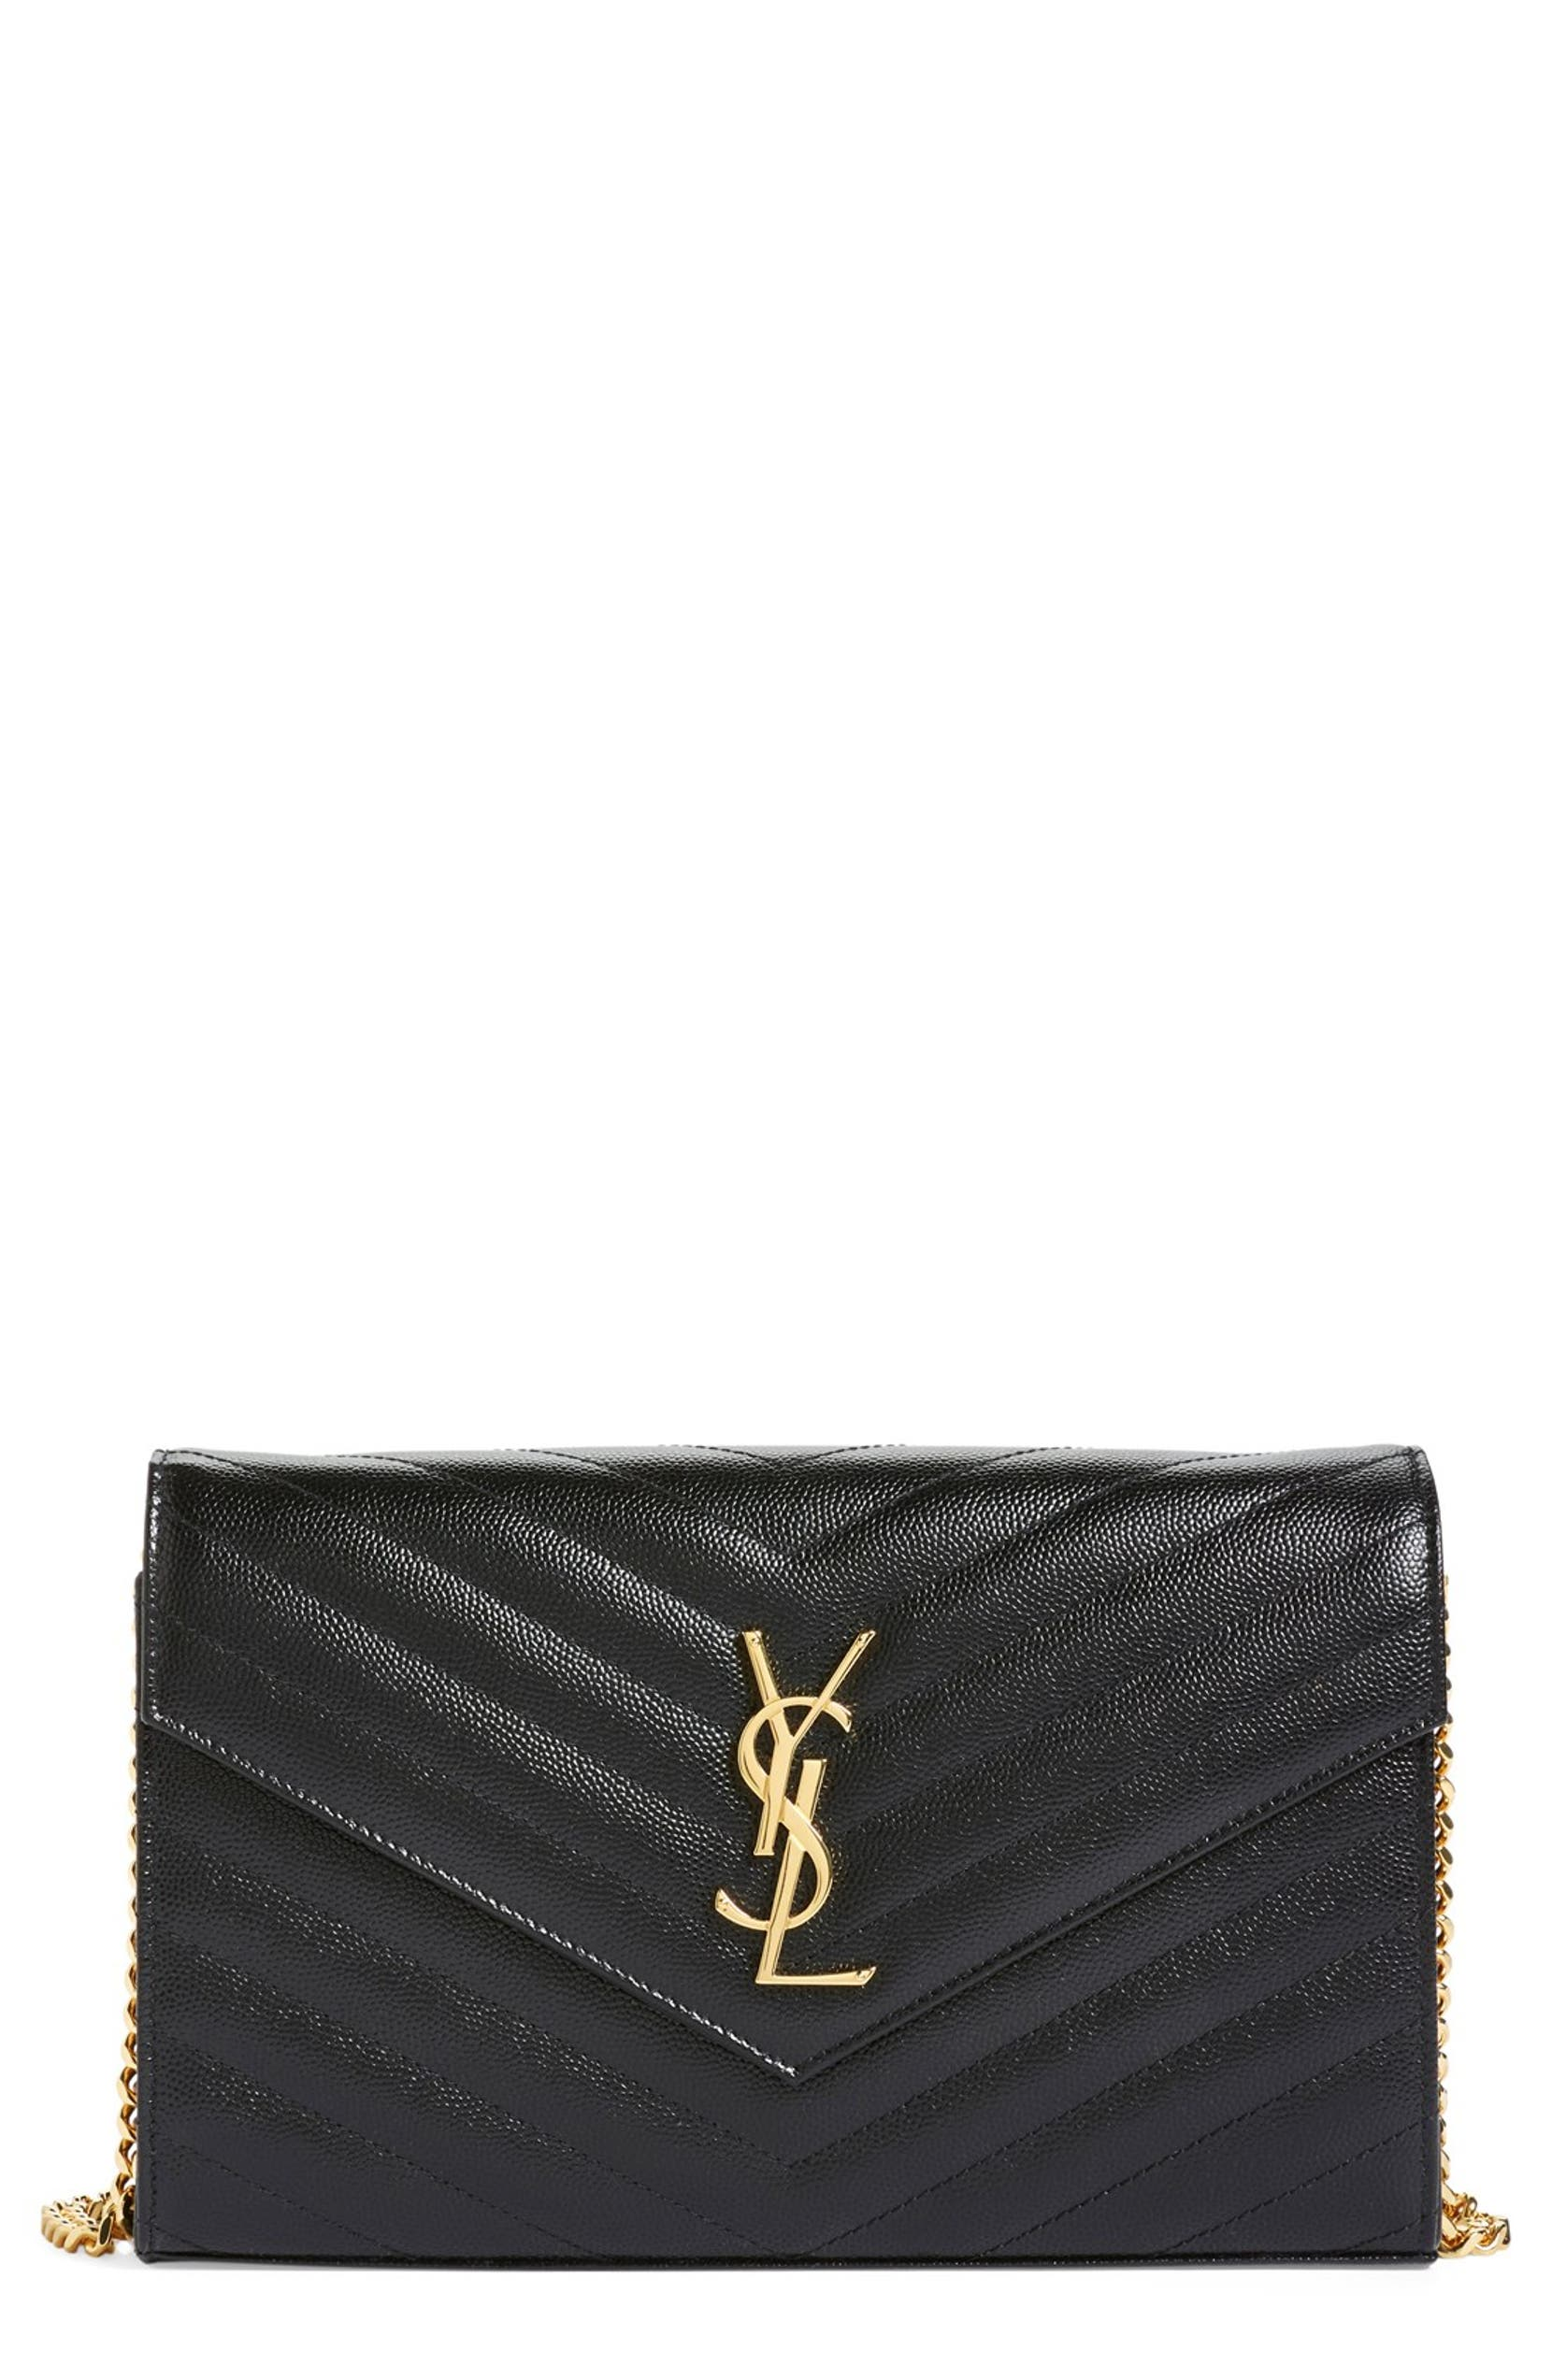 a4ade8be640 Saint Laurent Large Monogram Quilted Leather Wallet on a Chain ...